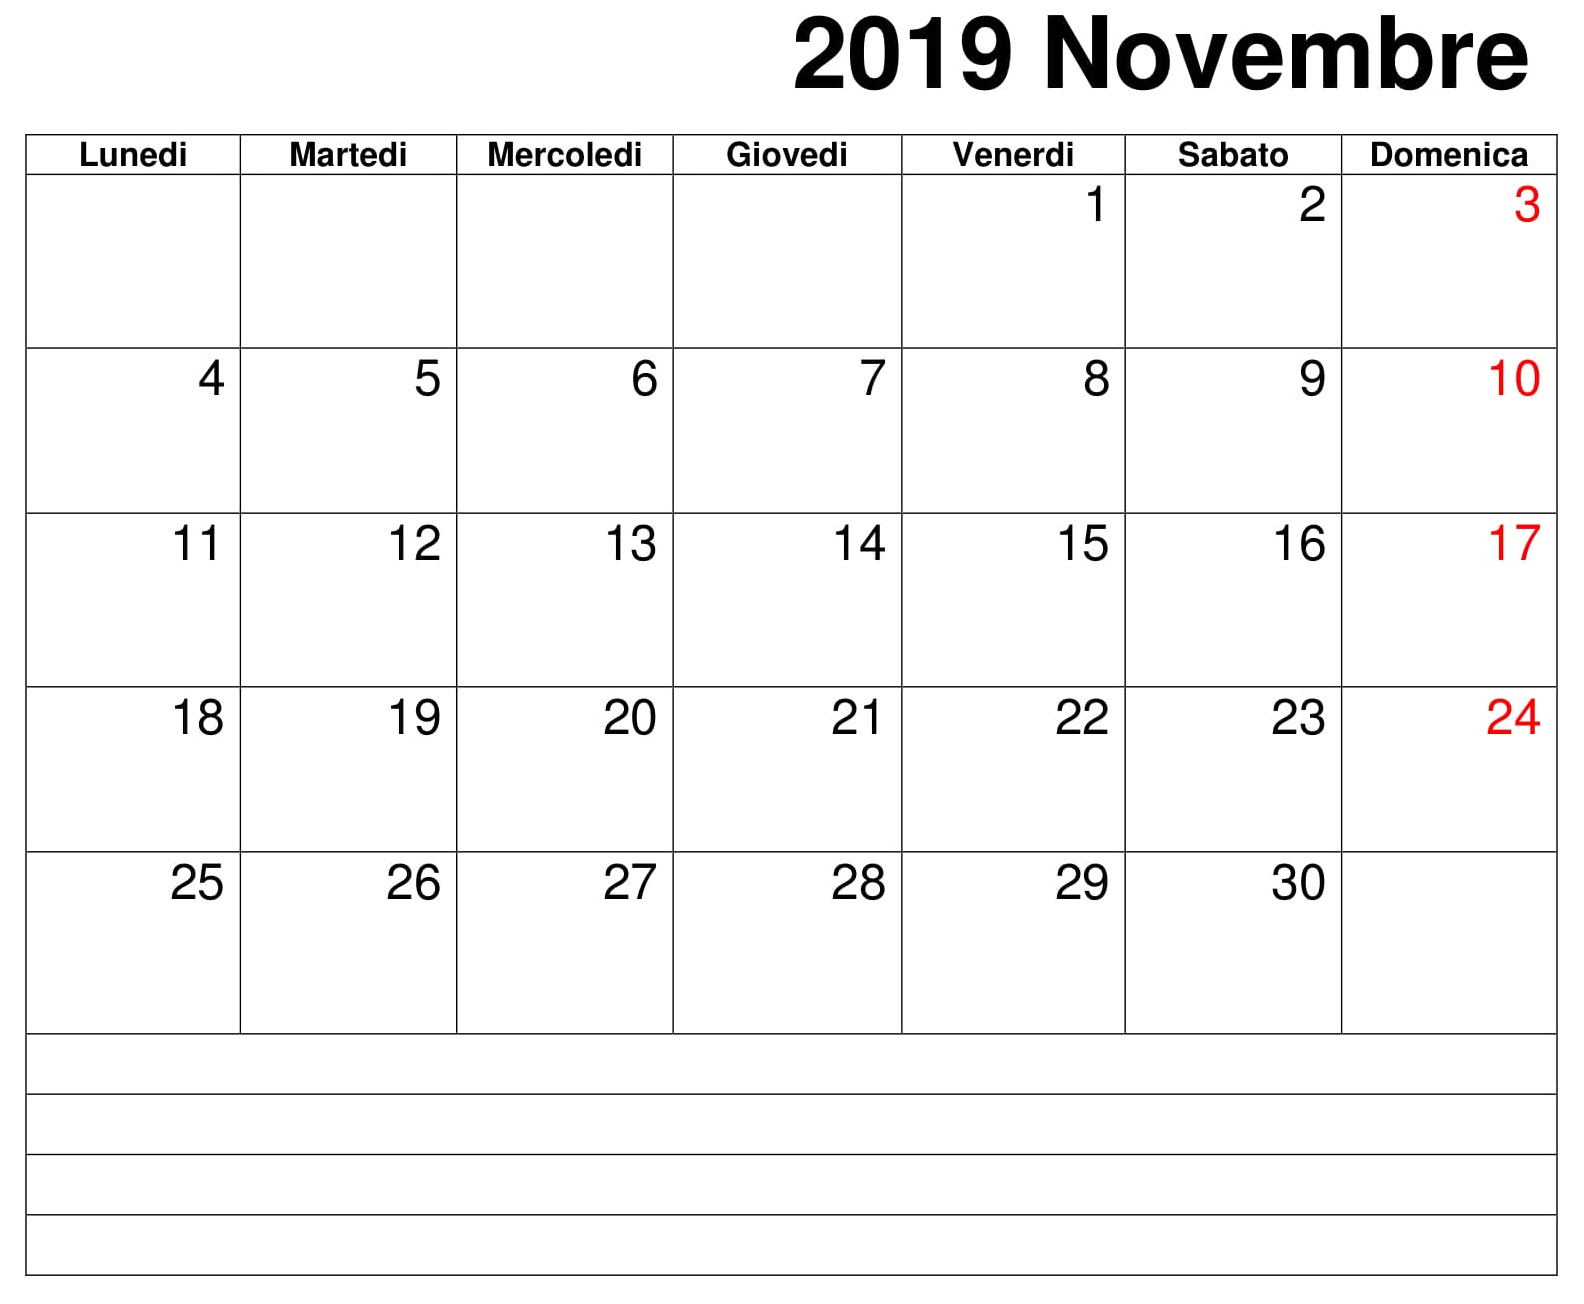 Calendario Mese Dicembre 2019 Da Stampare.Documento Calendario Novembre 2019 Da Stampare Calendario